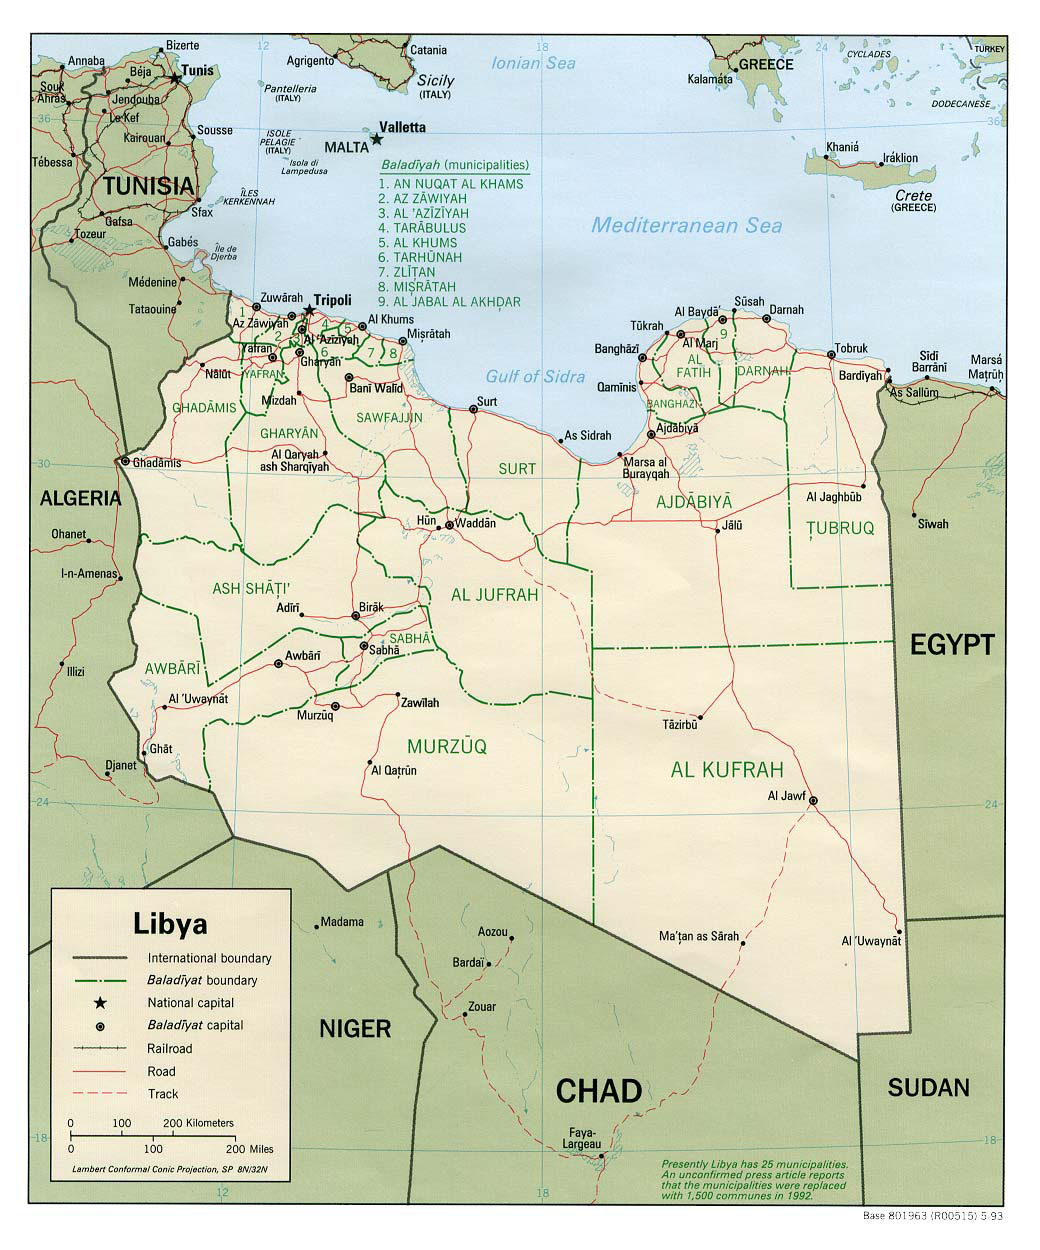 Detailed political and administrative map of Libya Libya detailed